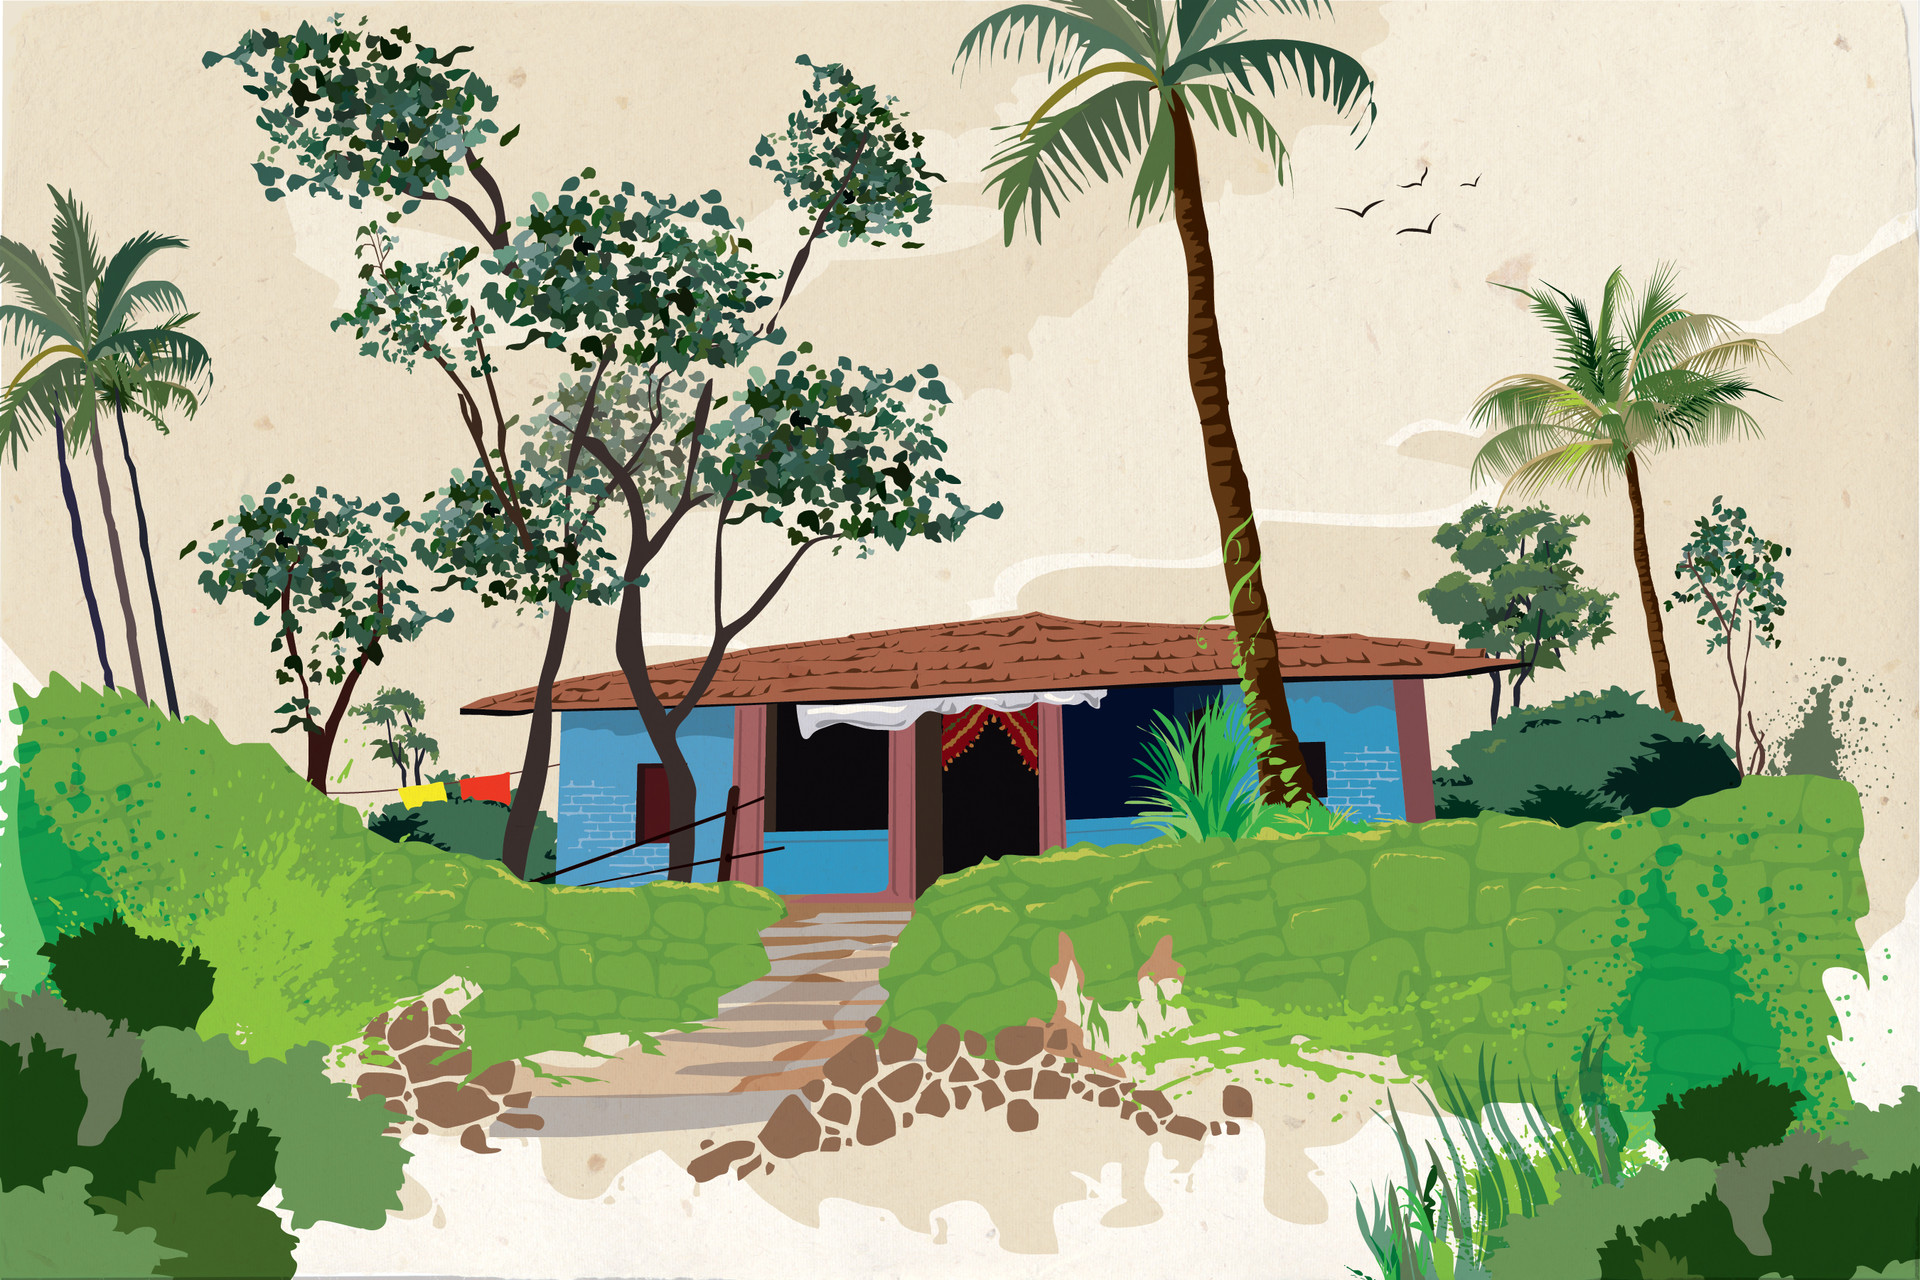 Rajesh r sawant blue house in konkan 01